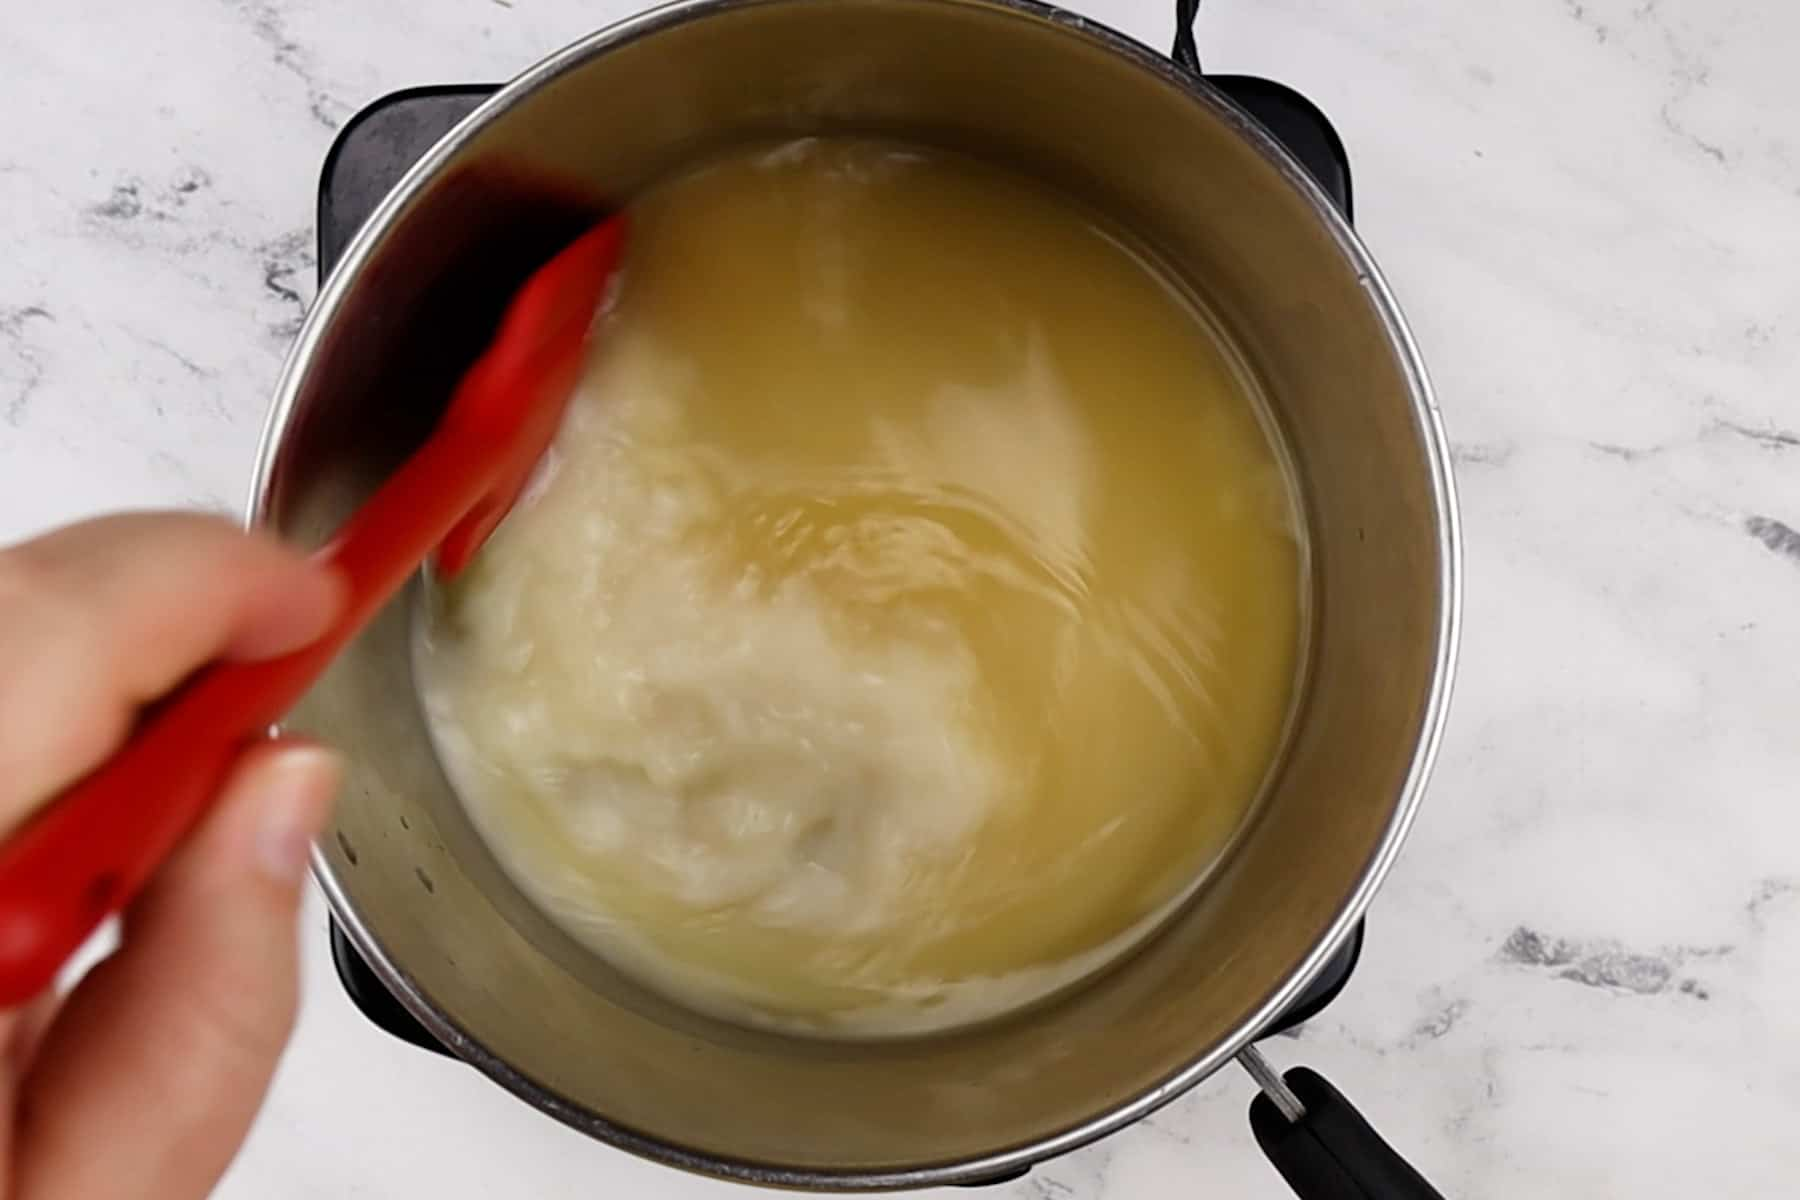 mixing broth and milk